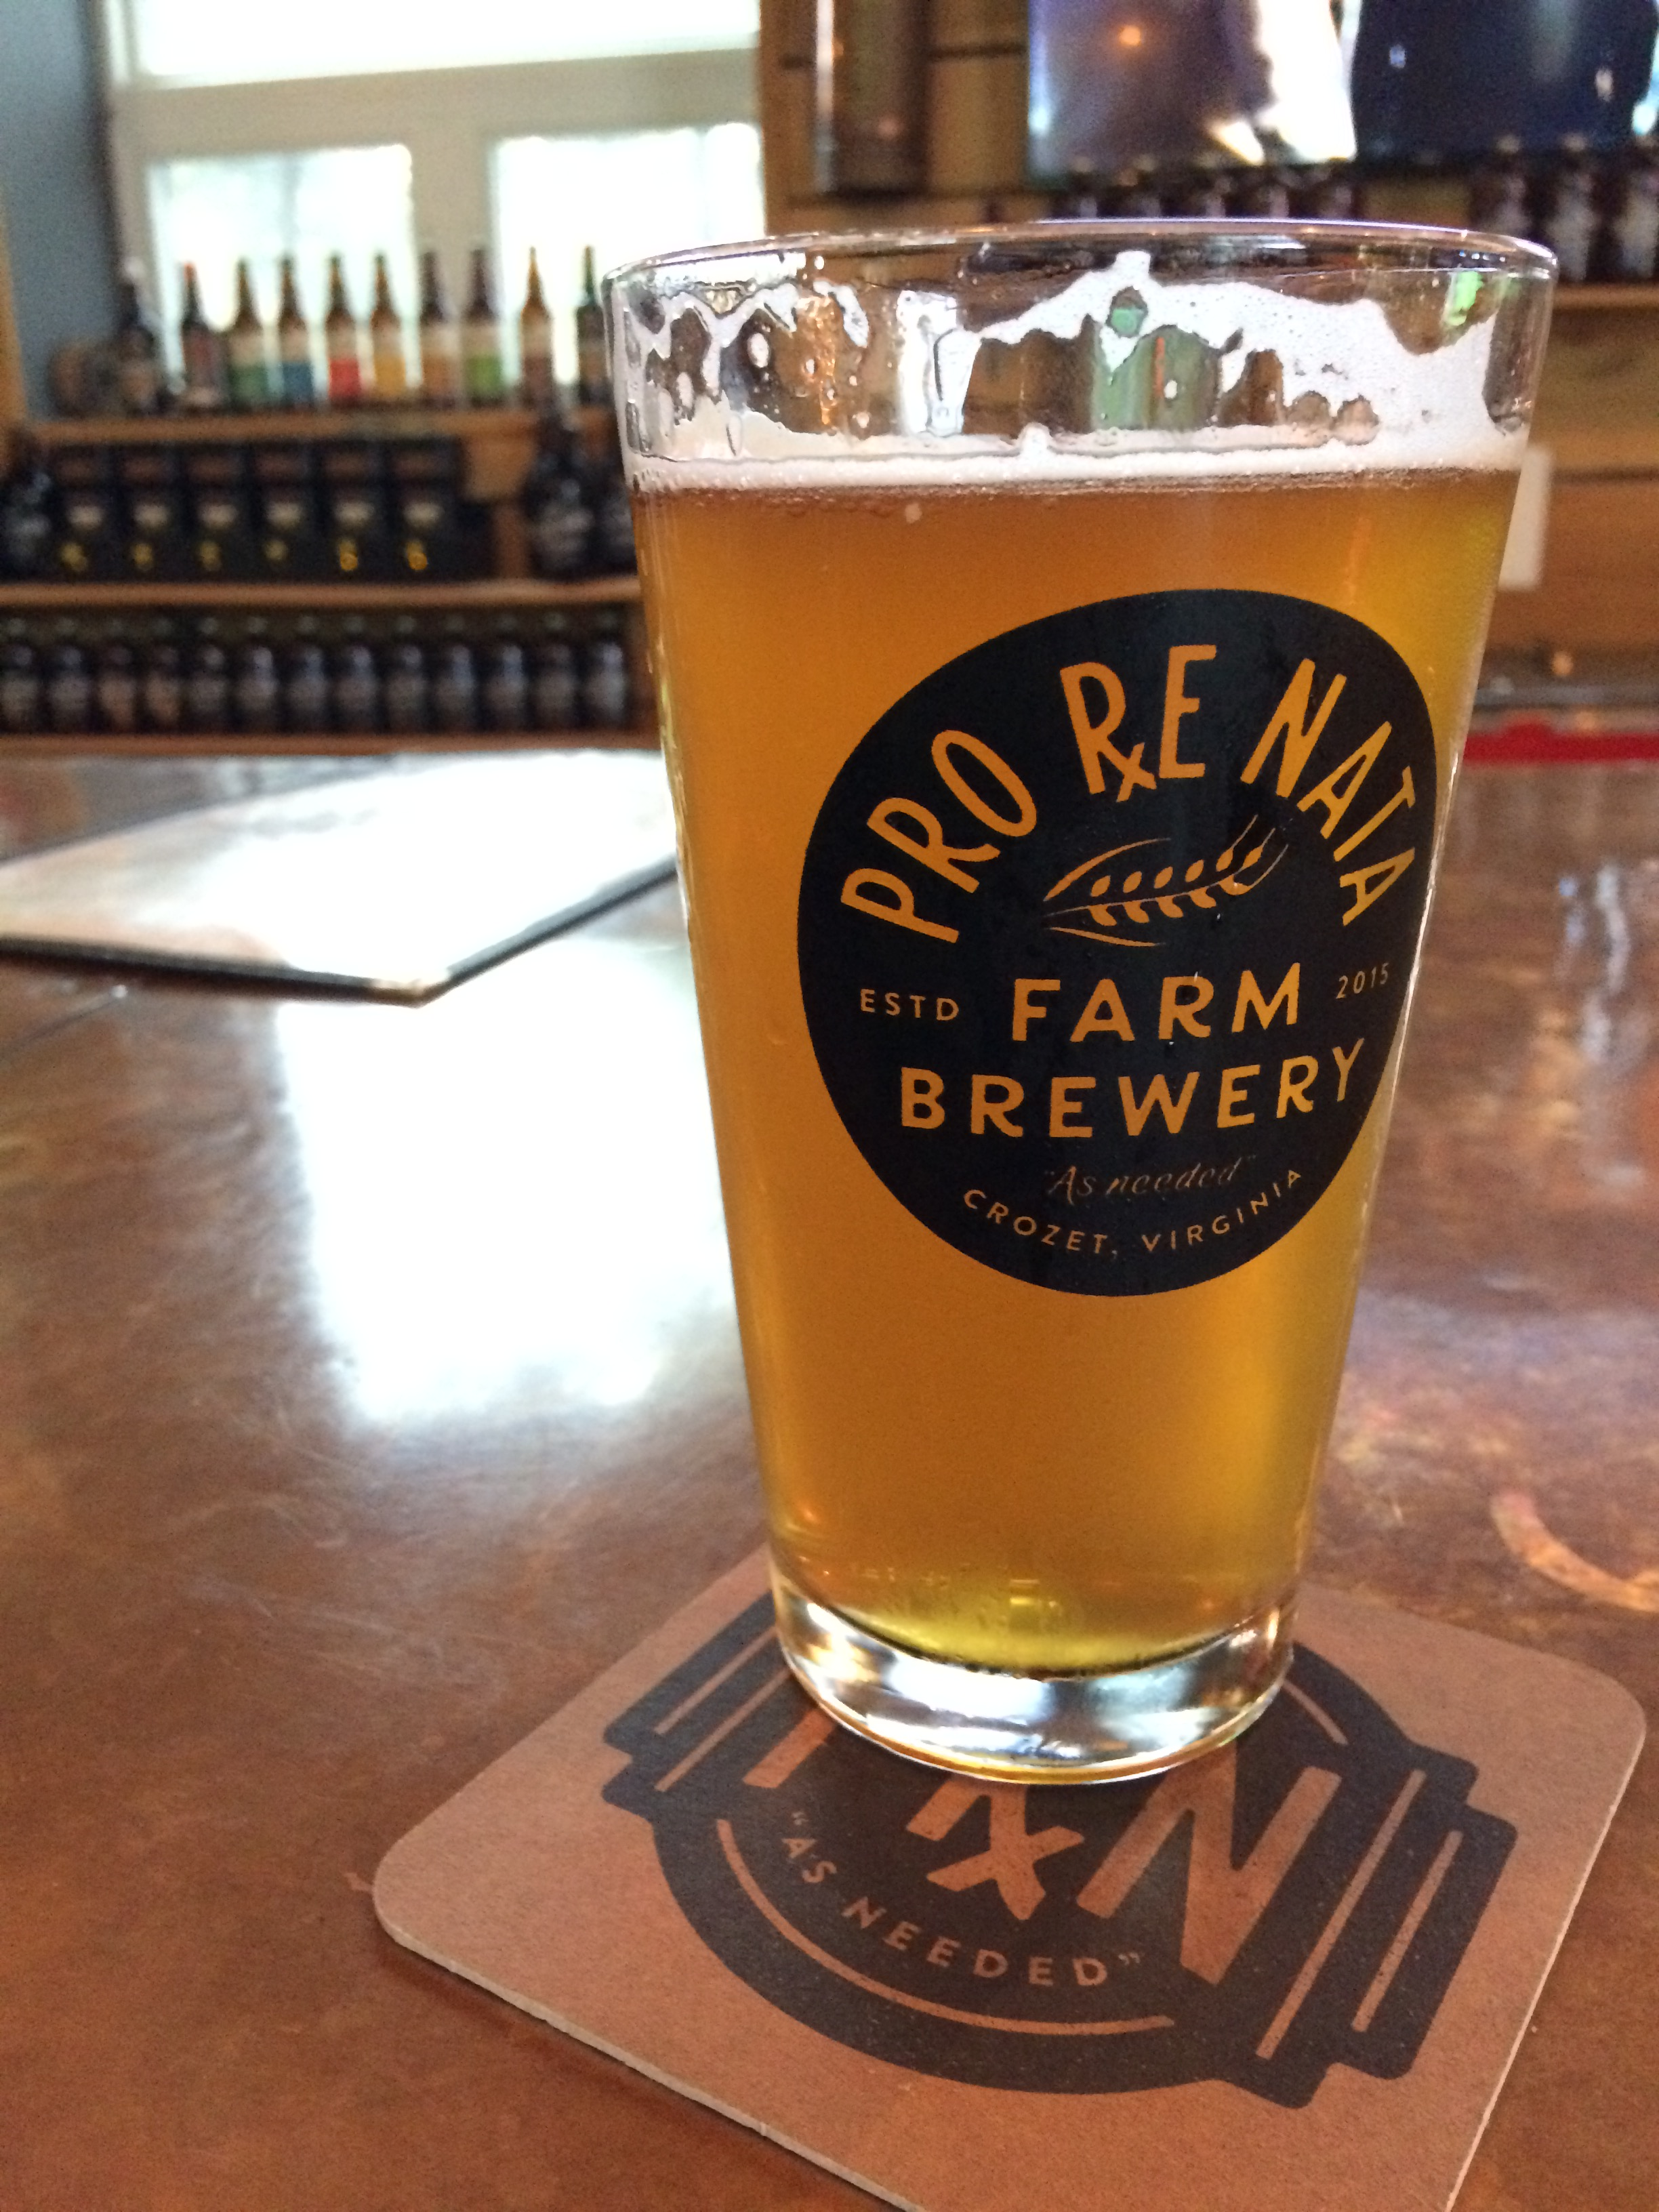 Rx For Sore Thumbs: Pro Re Nata Farm Brewery